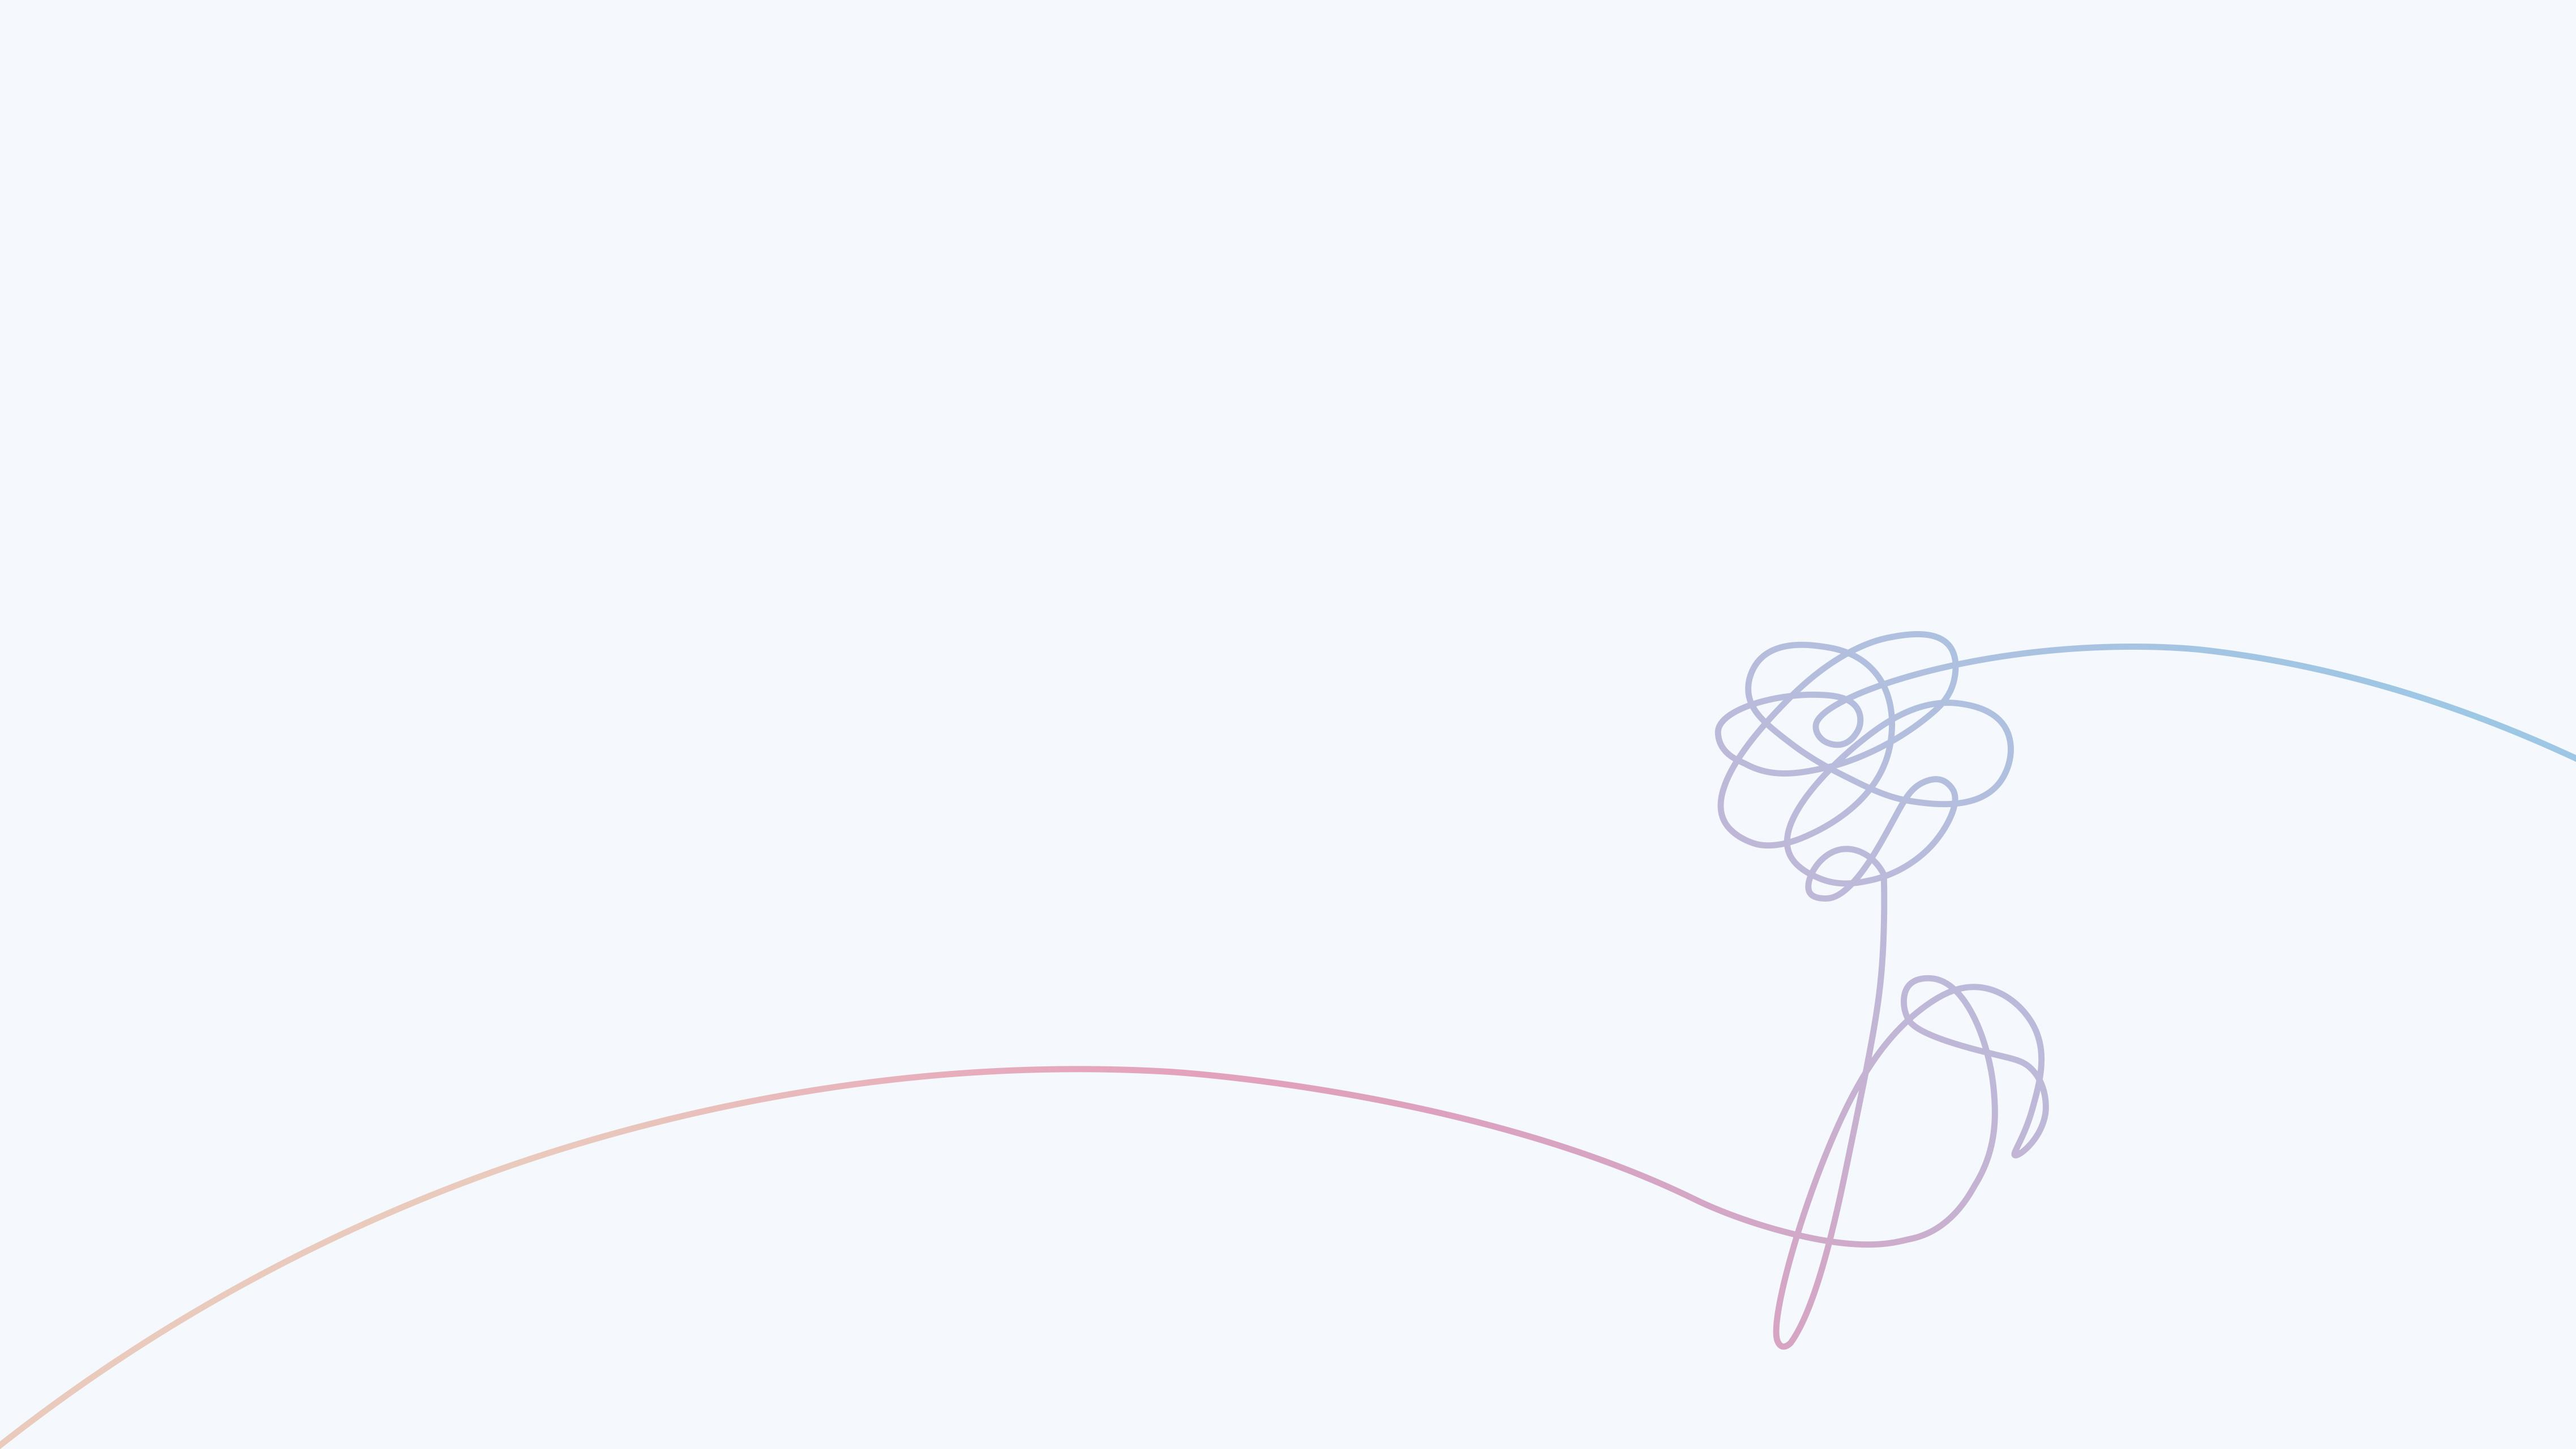 15 Bts drawing desktop wallpapers for free download on Ayoqq